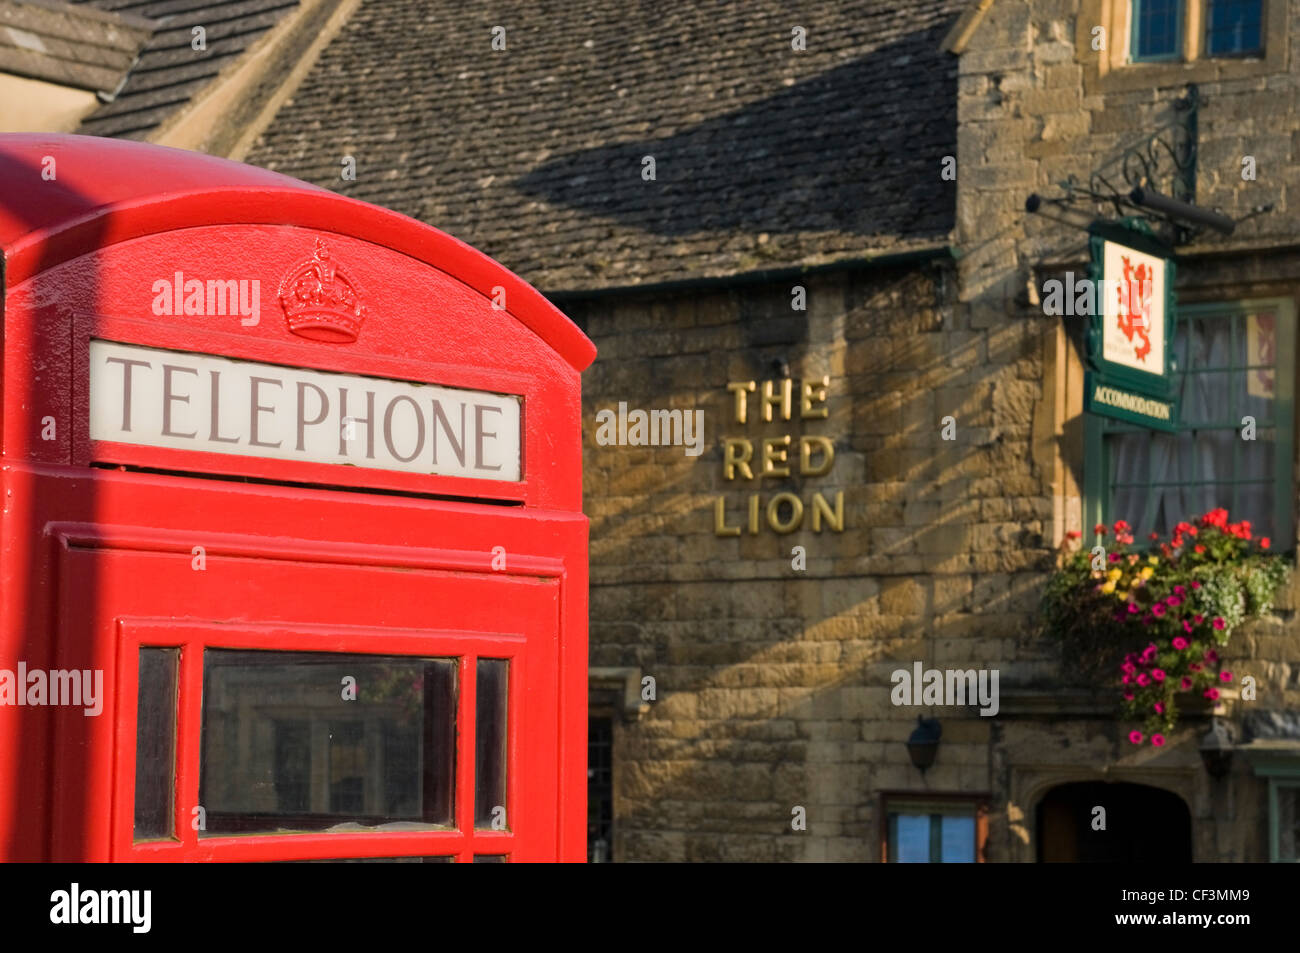 A traditional red telephone box outside the Red Lion pub in Chipping Camden. - Stock Image